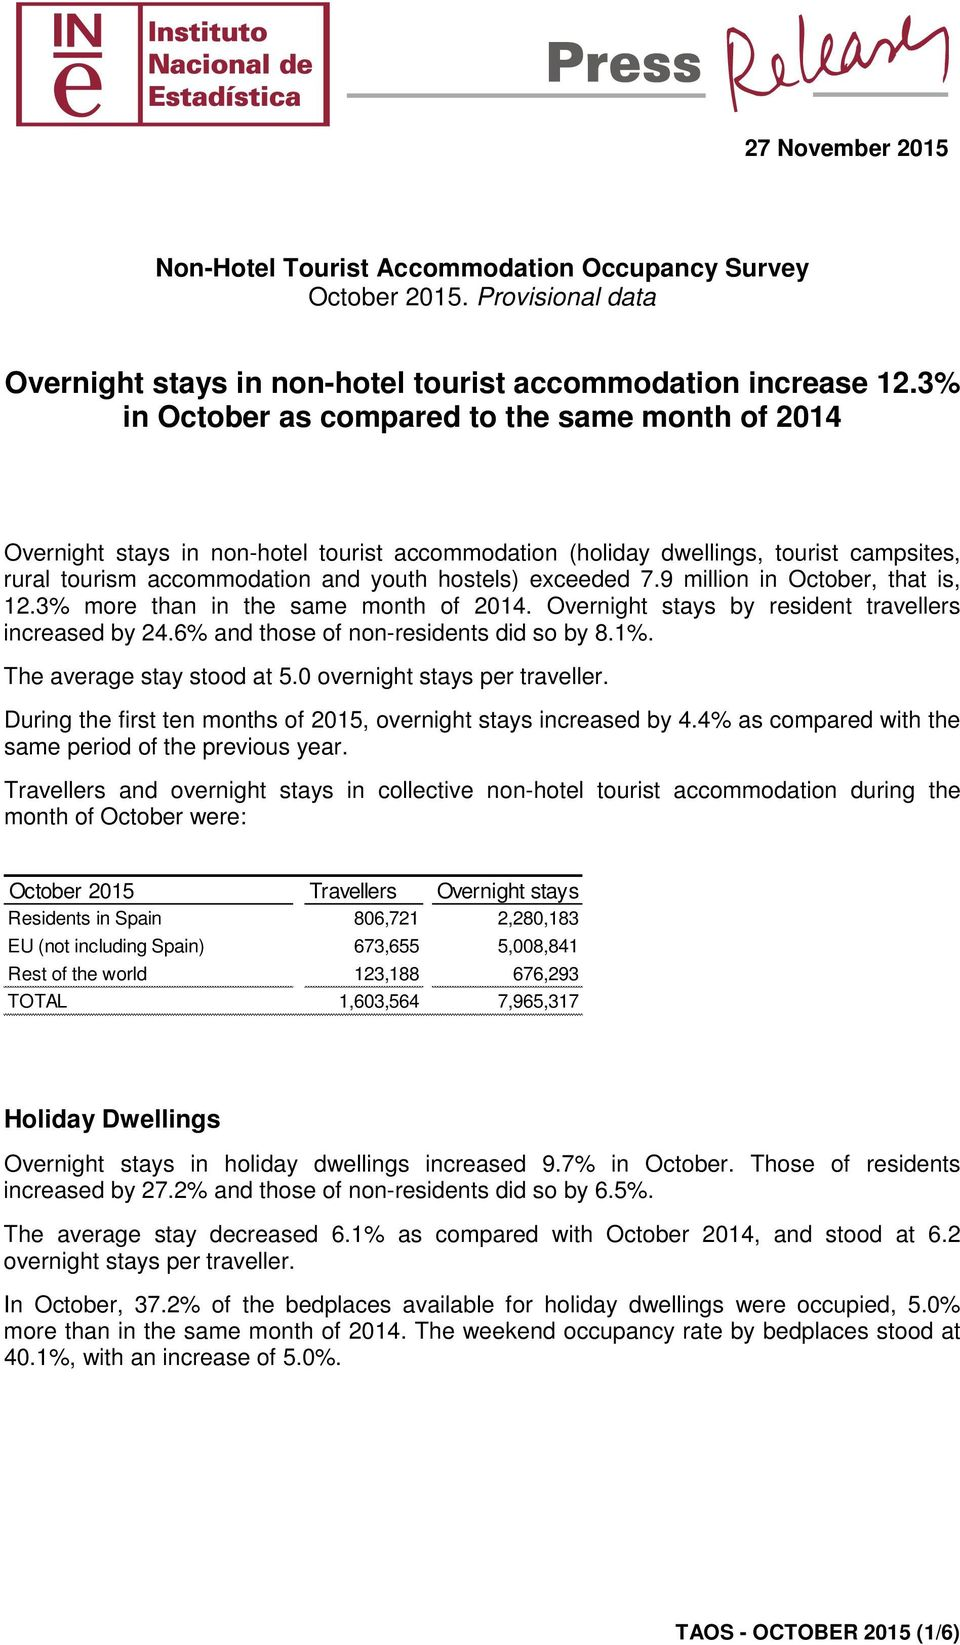 9 million in October, that is, 12.3% more than in the same month of 2014. Overnight stays by resident travellers increased by 24.6% and those of non-residents did so by 8.1%.